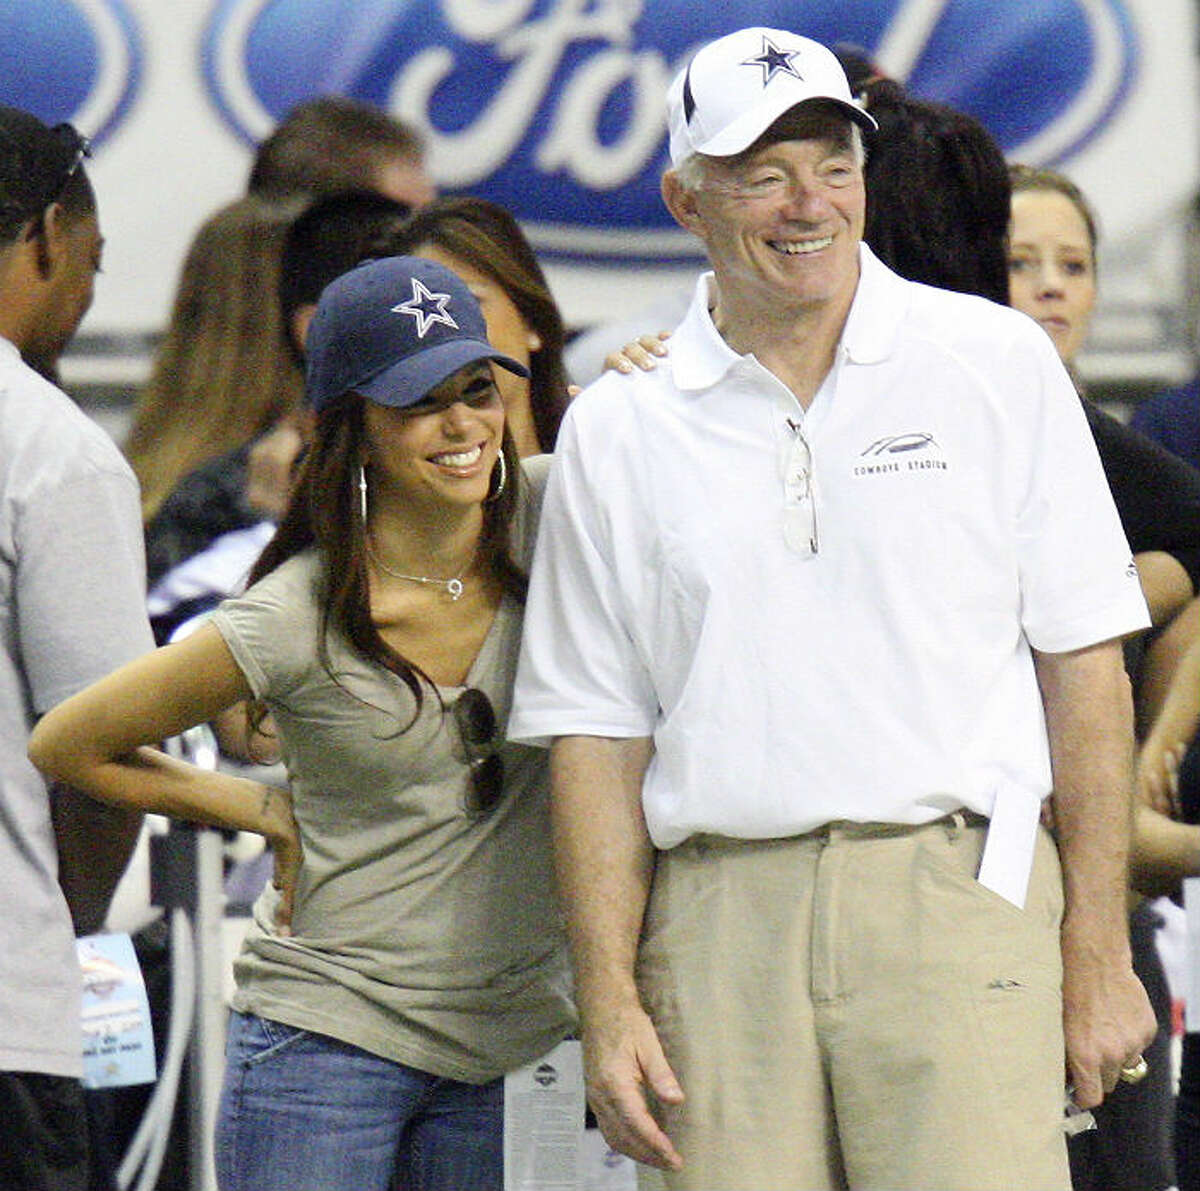 In honor of Dallas Cowboys owner turning 70 Saturday, Oct. 13, Cowboys beat writer Tom Orsborn offers five reasons to hate - and five reasons to love - Jerry Jones. EDWARD A. ORNELAS/eaornelas@express-news.netA